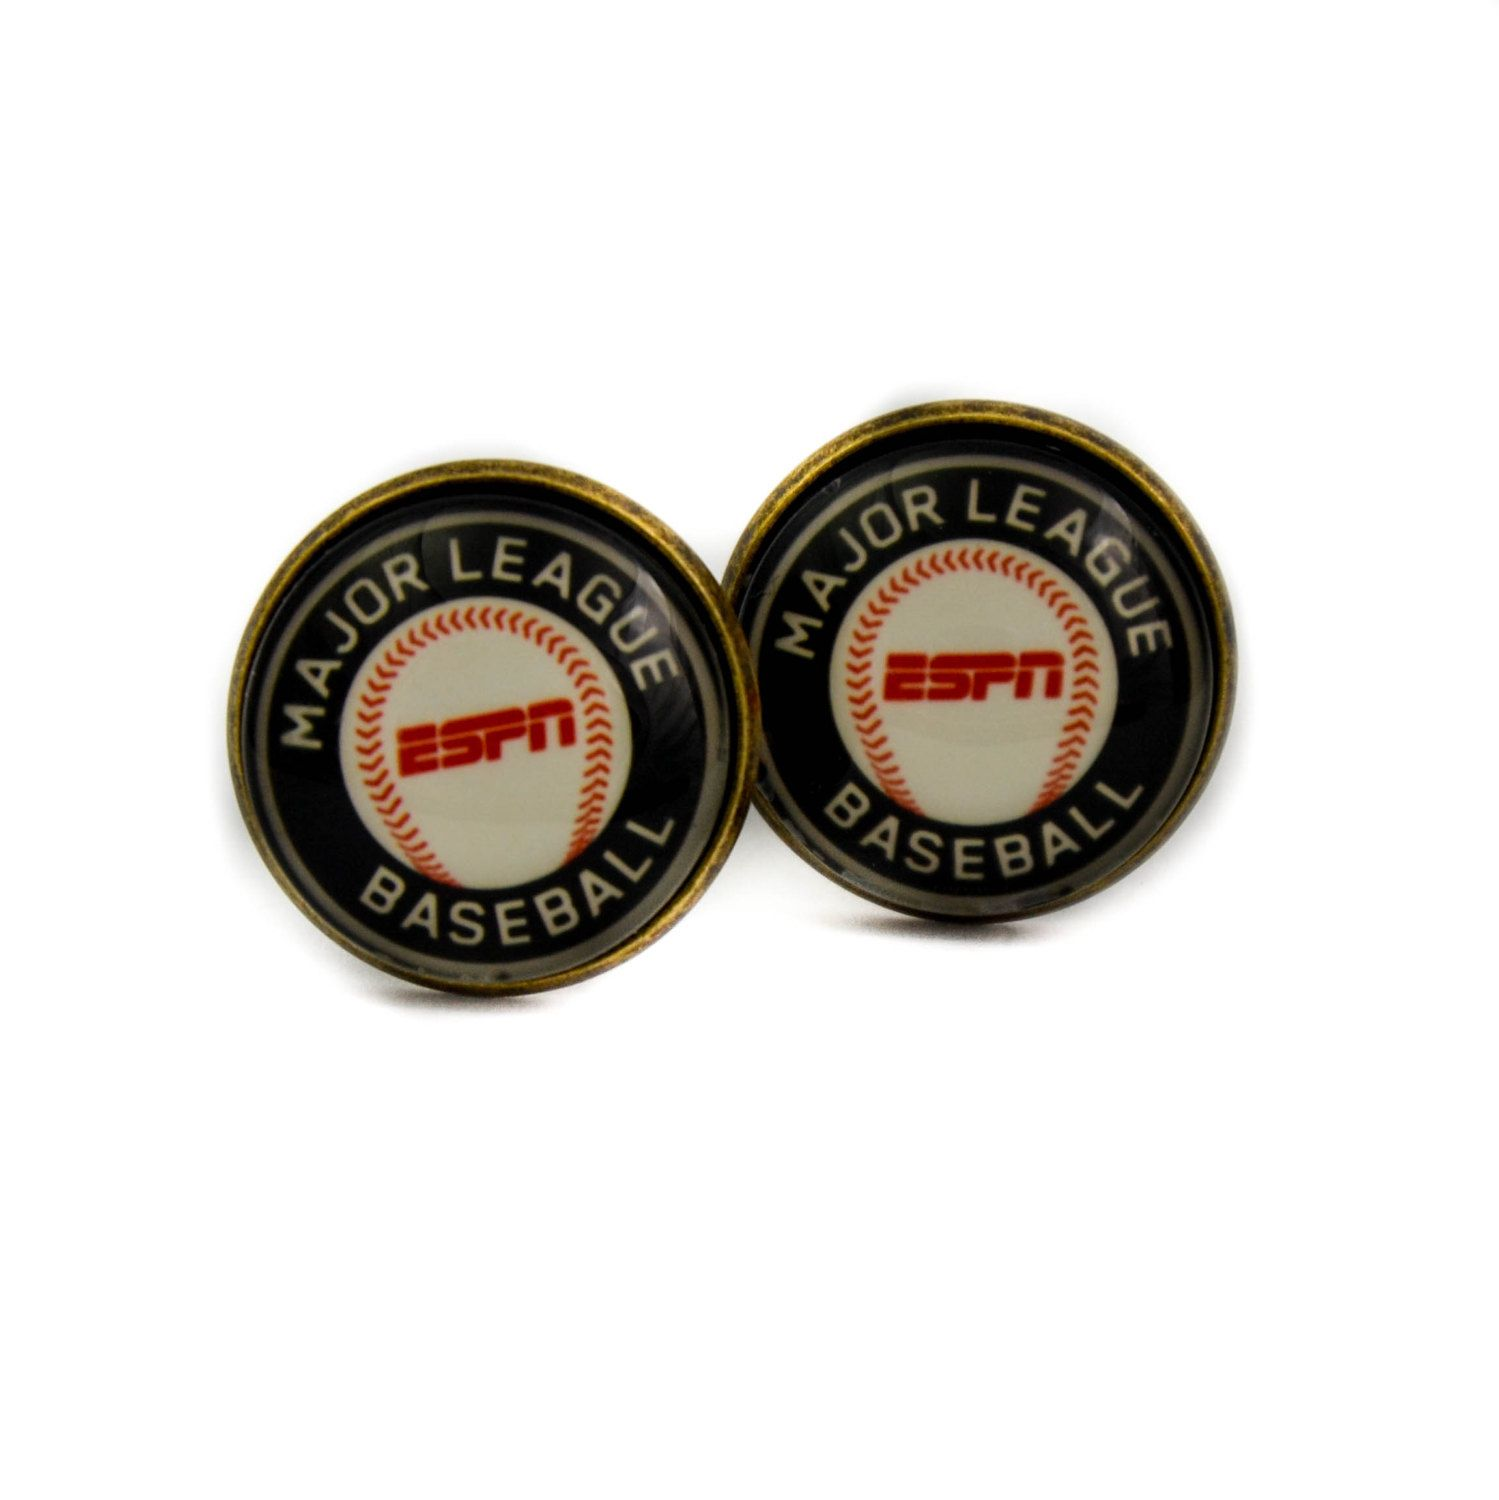 Major League Baseball cufflinks. ESPN cuff links. Personalised Silver,Glass dome cufflinks. Gift for men Anniversary Present by Mysstic on Etsy